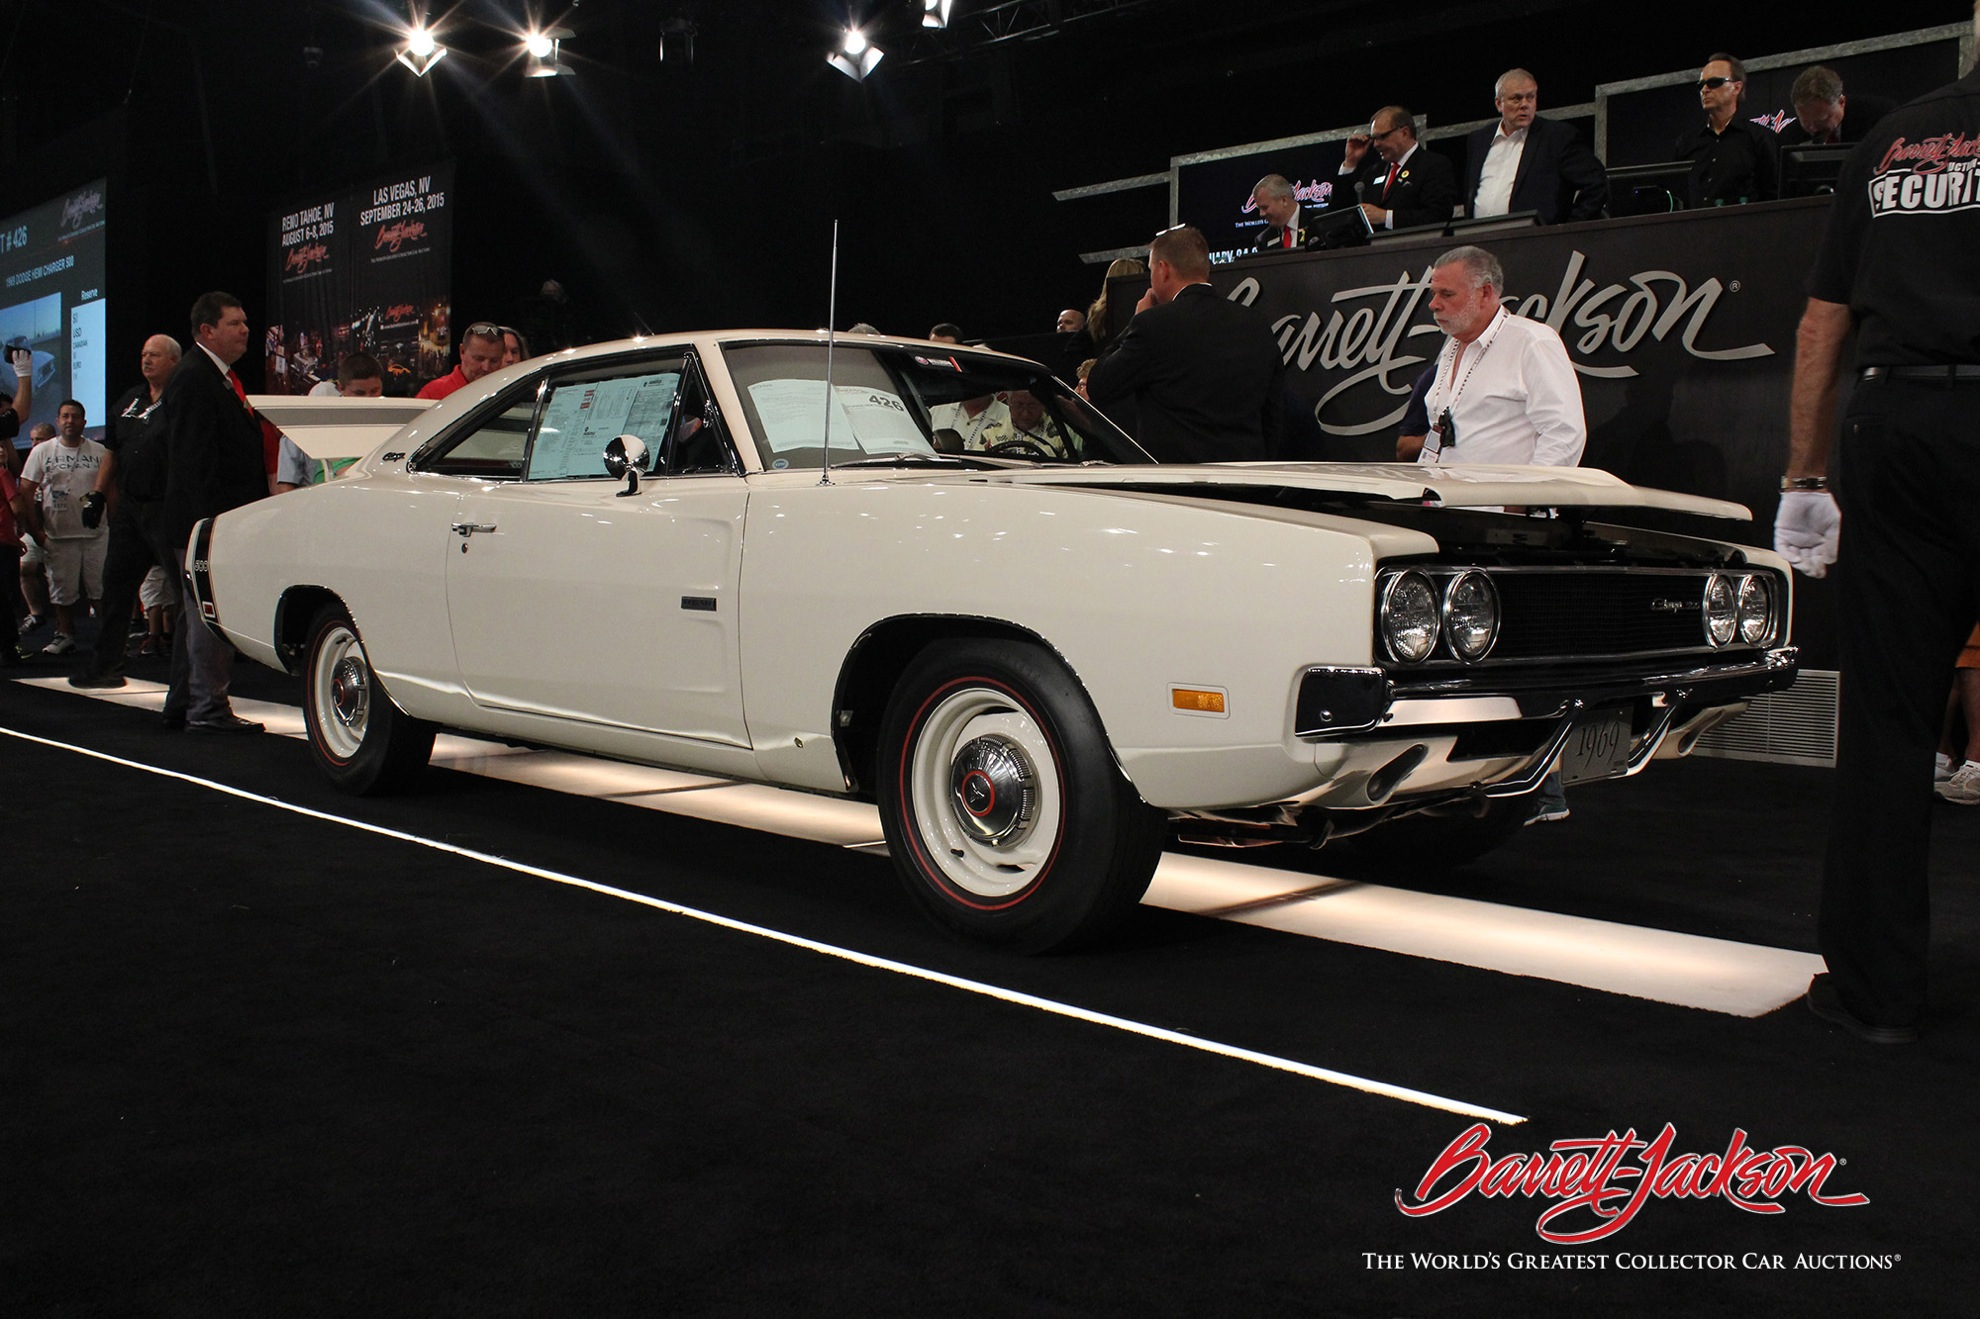 Lot #426 – 1969 Dodge HEMI Charger 500 – $165,000